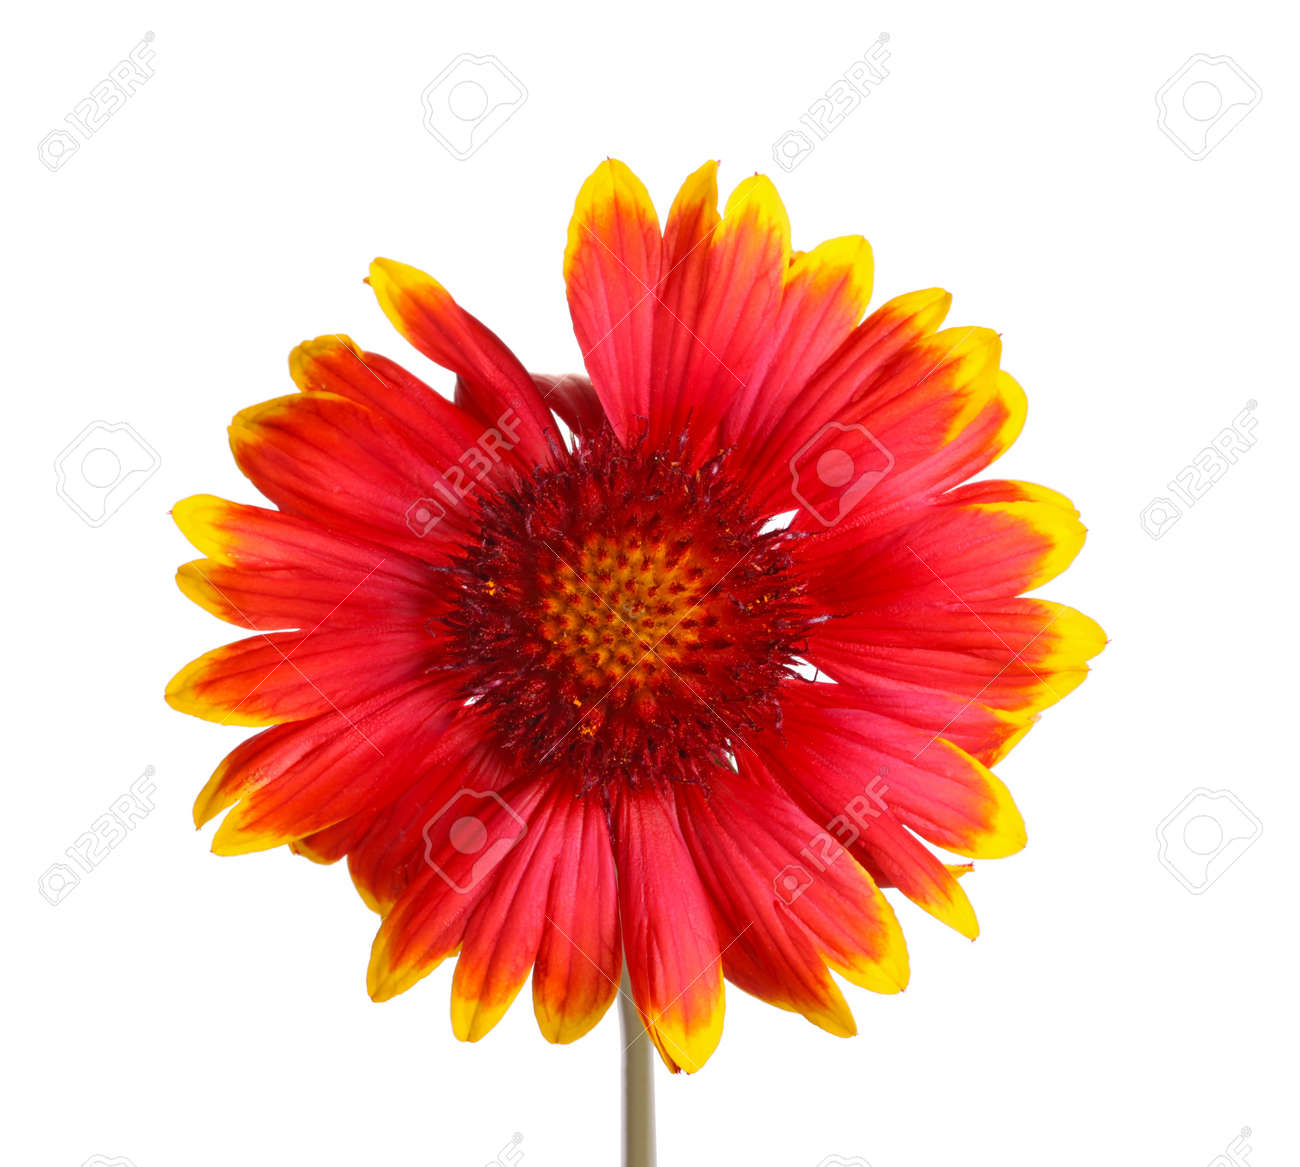 Red And Yellow Flower Of The Perennial Indian Blanketflower Stock